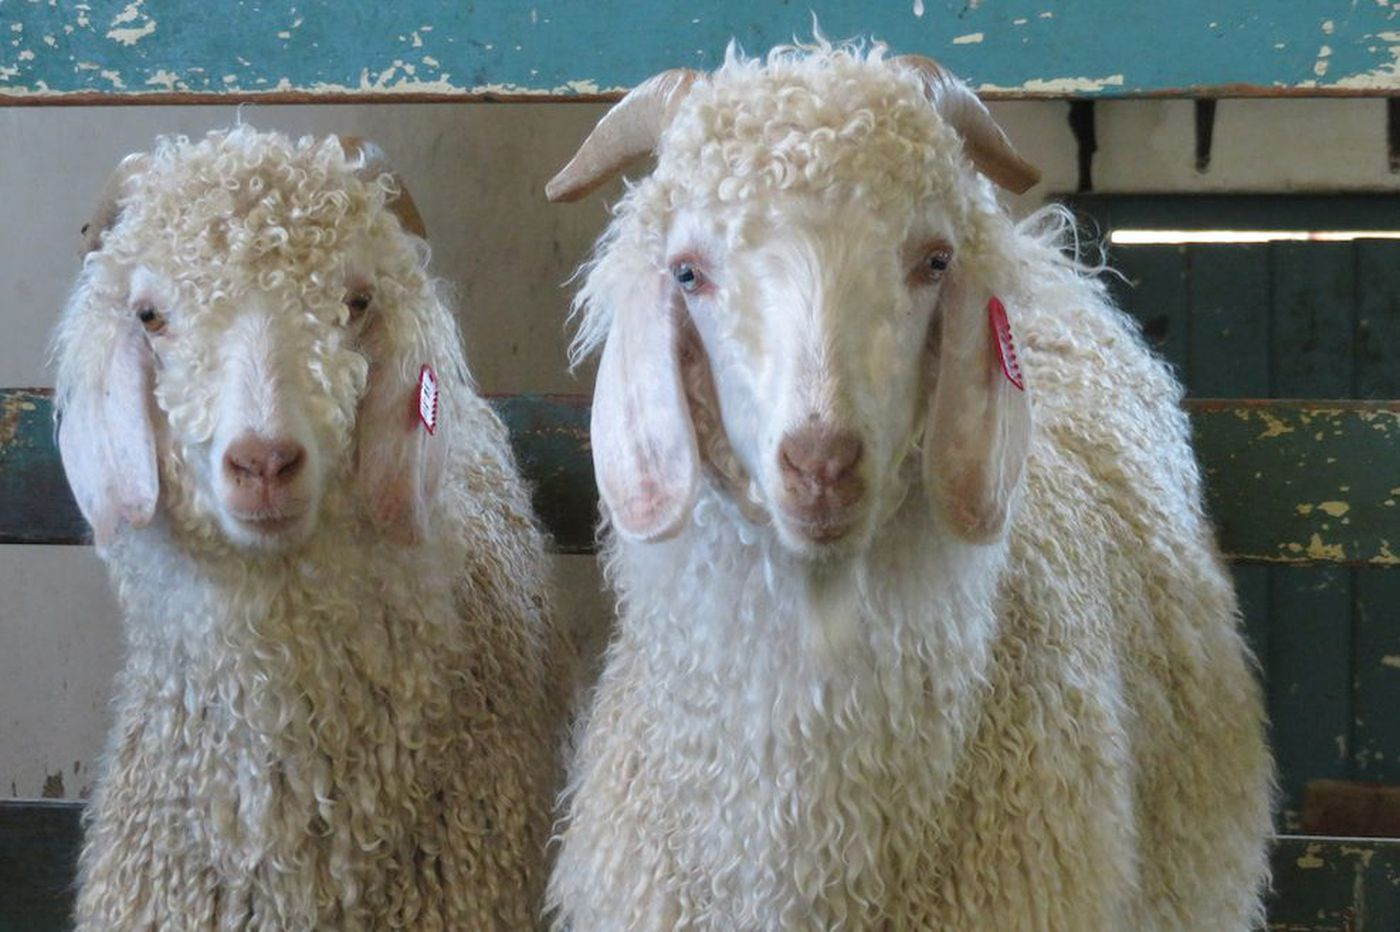 H&M, Zara, and others ban mohair products after animal cruelty investigation